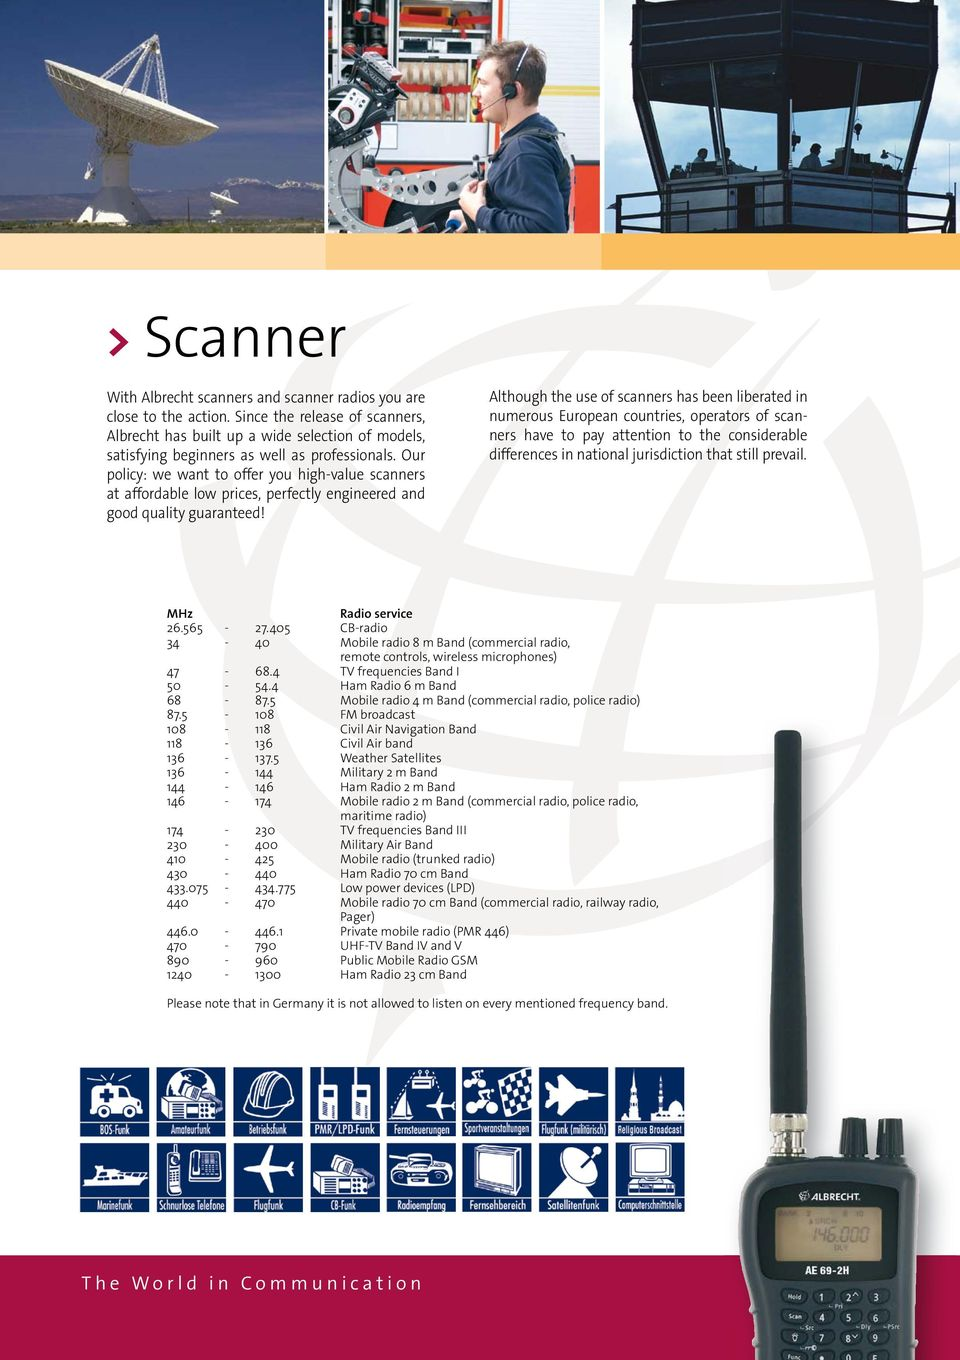 Our policy: we want to offer you high-value scanners at affordable low prices, perfectly engineered and good quality guaranteed!